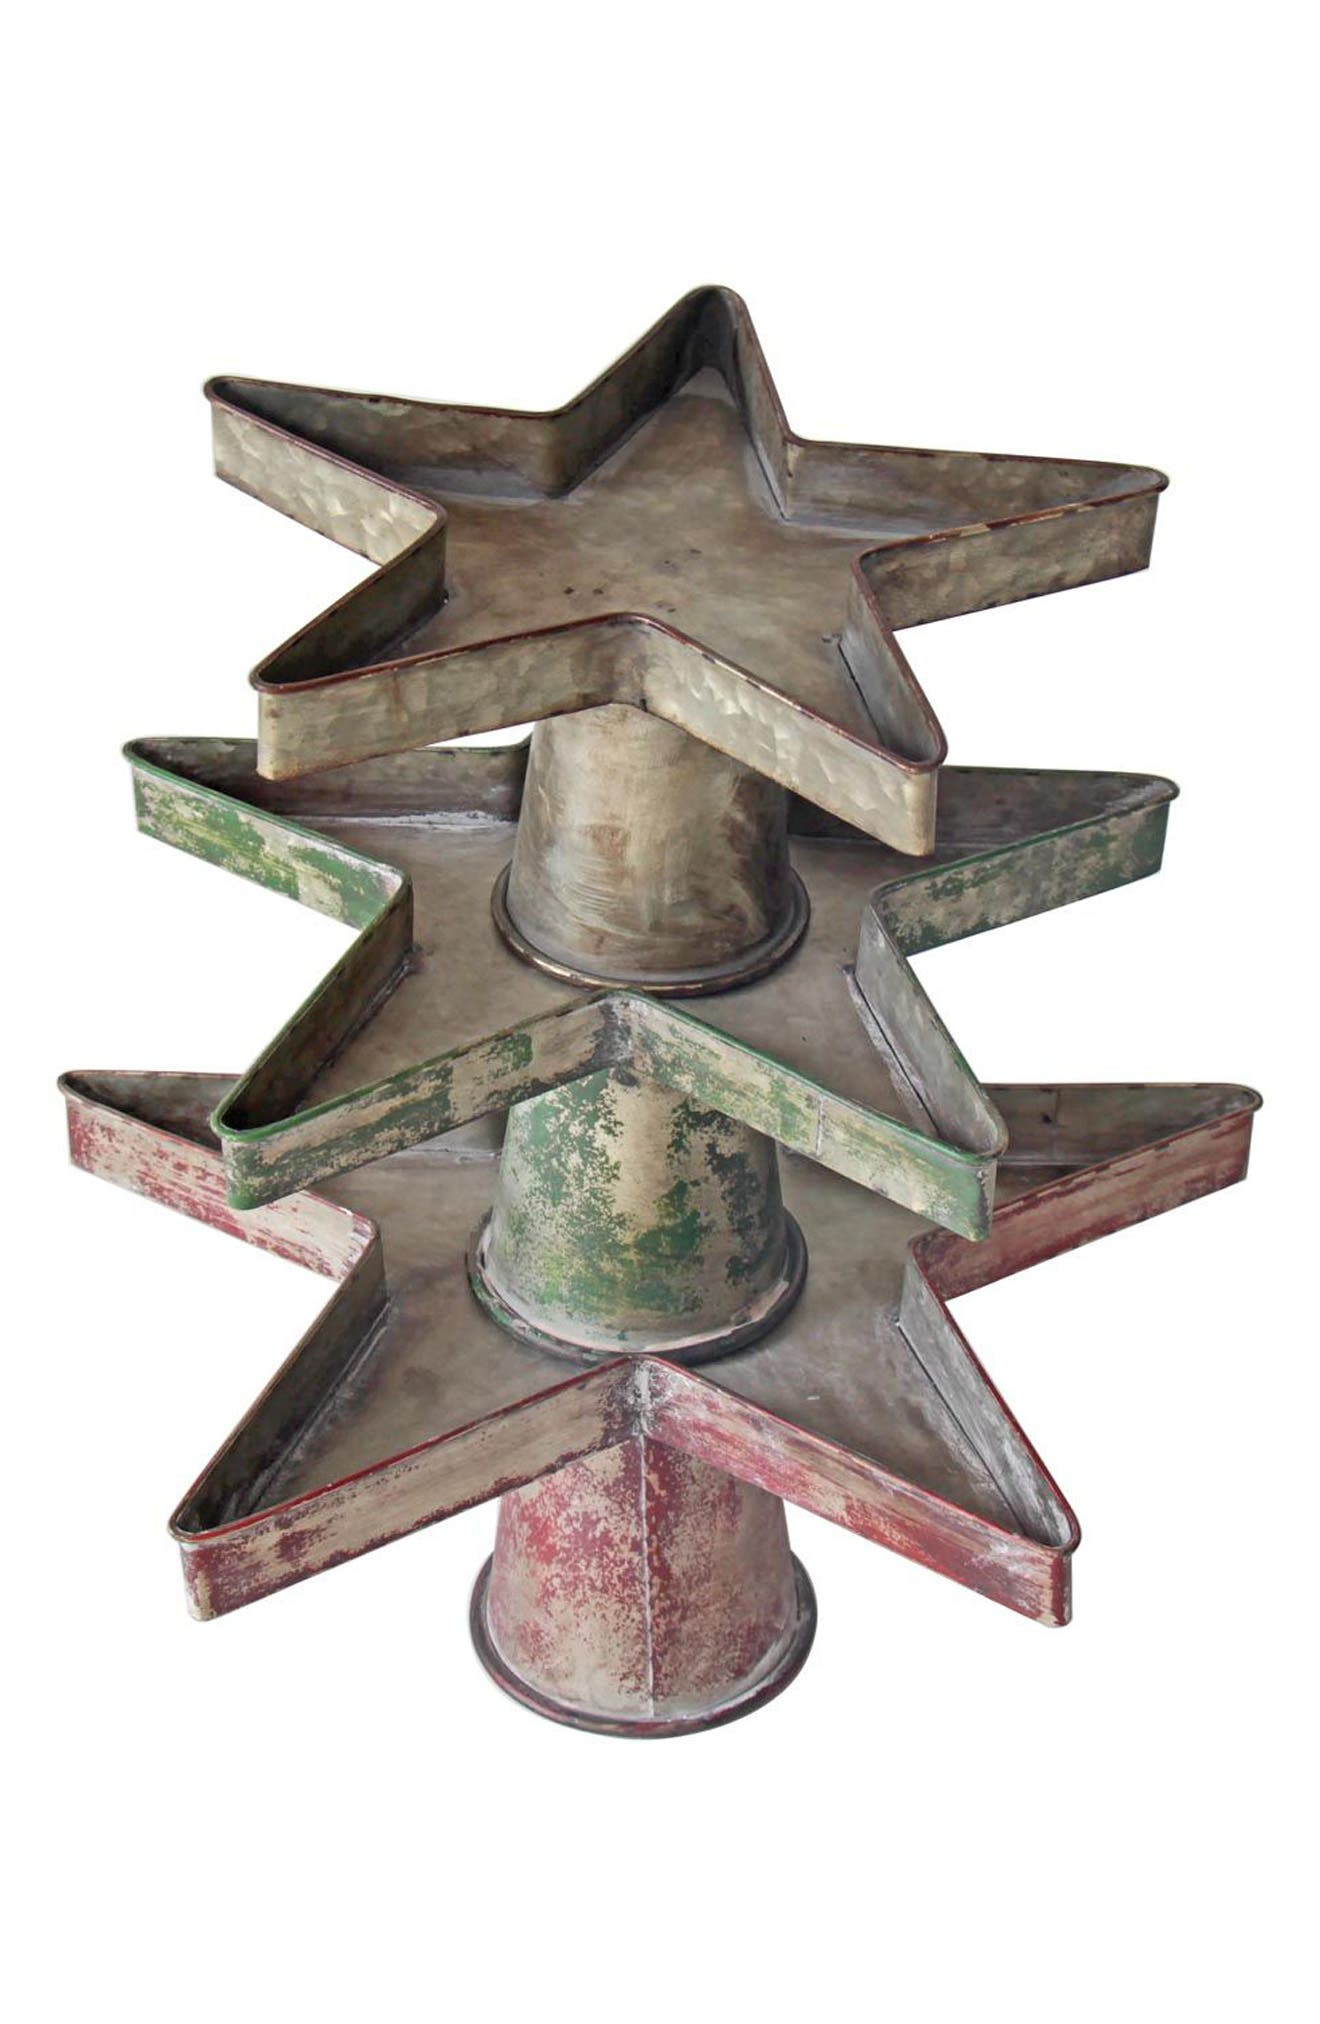 Set of 3 Stackable Galvanized Metal Star Trays,                         Main,                         color, Metal/ Red/ Green